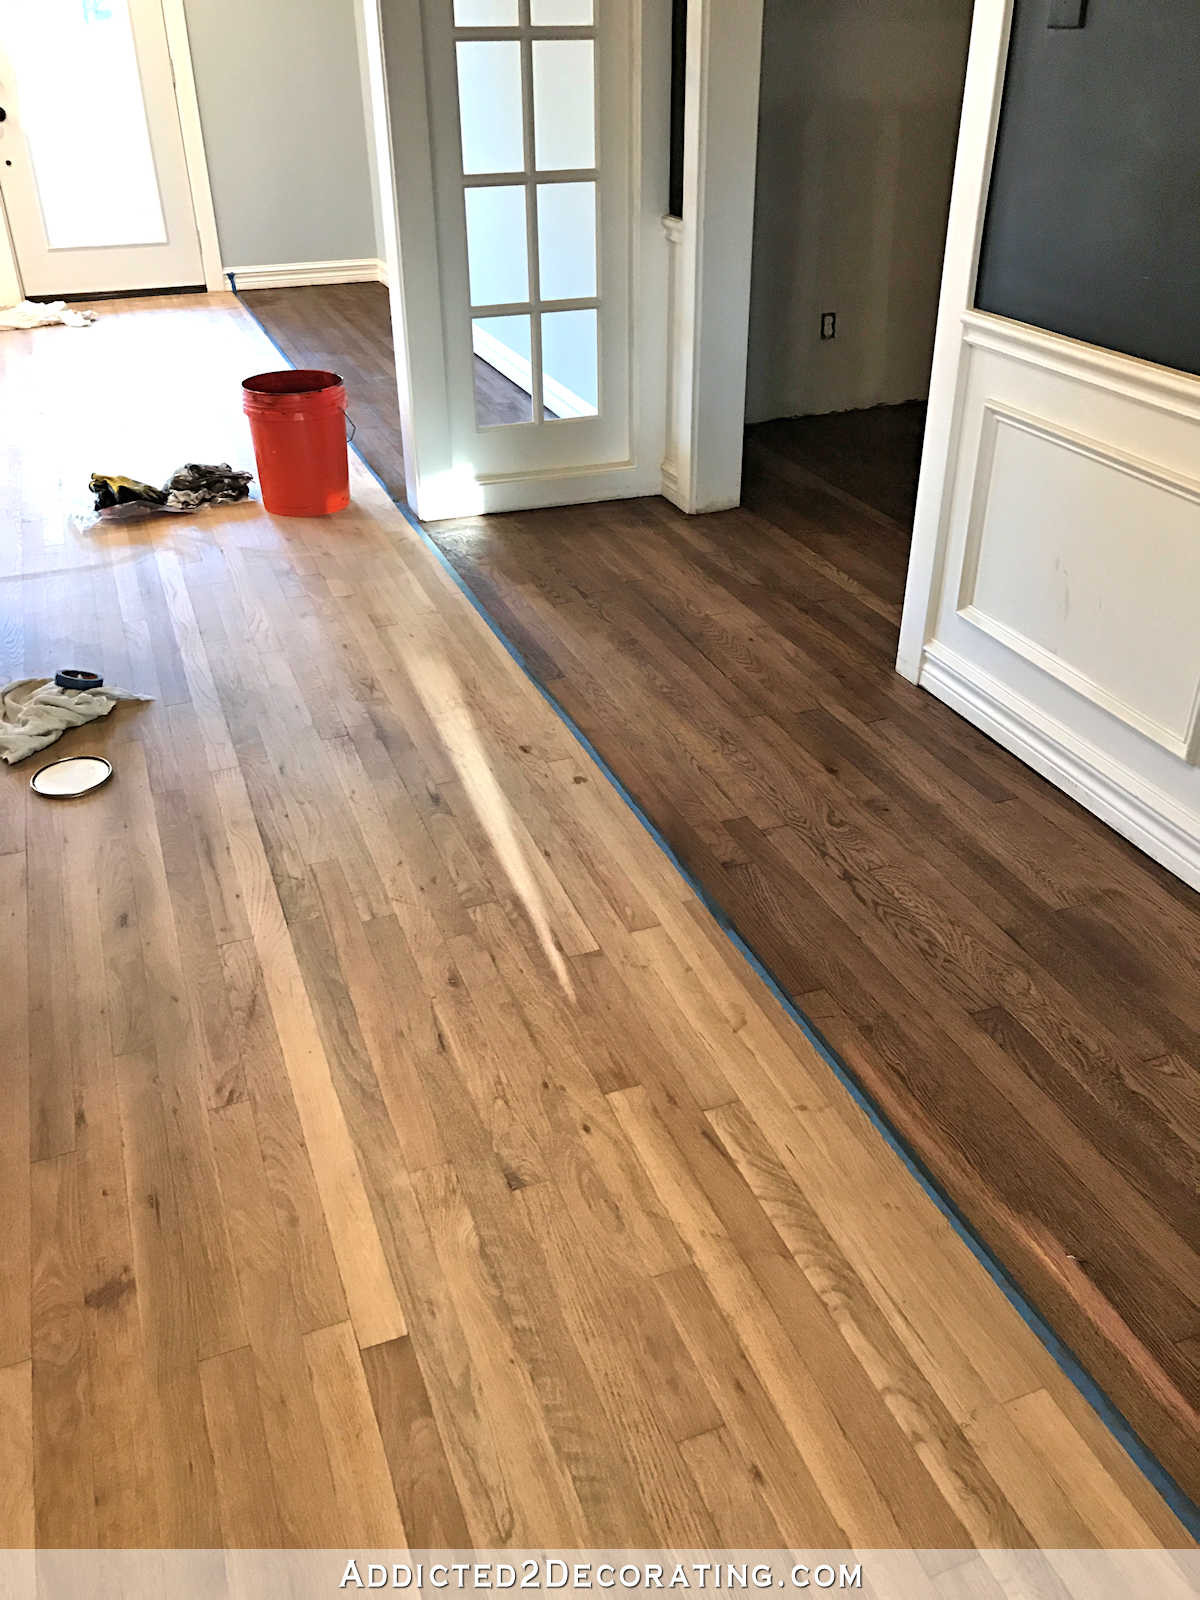 hardwood floor finishes matte vs satin of adventures in staining my red oak hardwood floors products process intended for staining red oak hardwood floors 6 stain on partial floor in entryway and music room